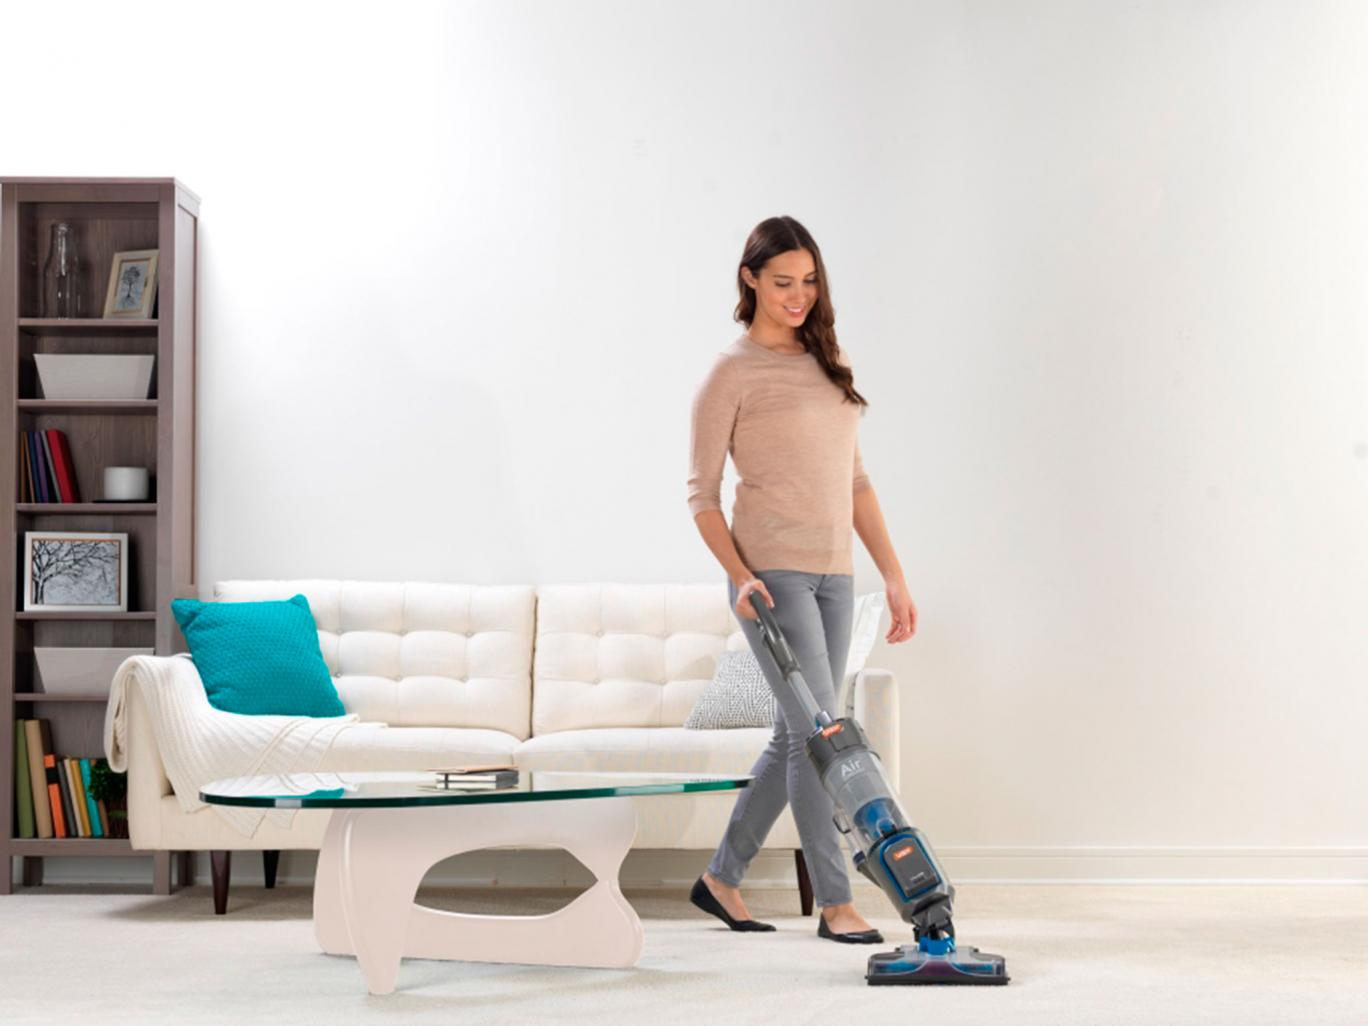 woman vacuuming the carpet with an upright vacuum